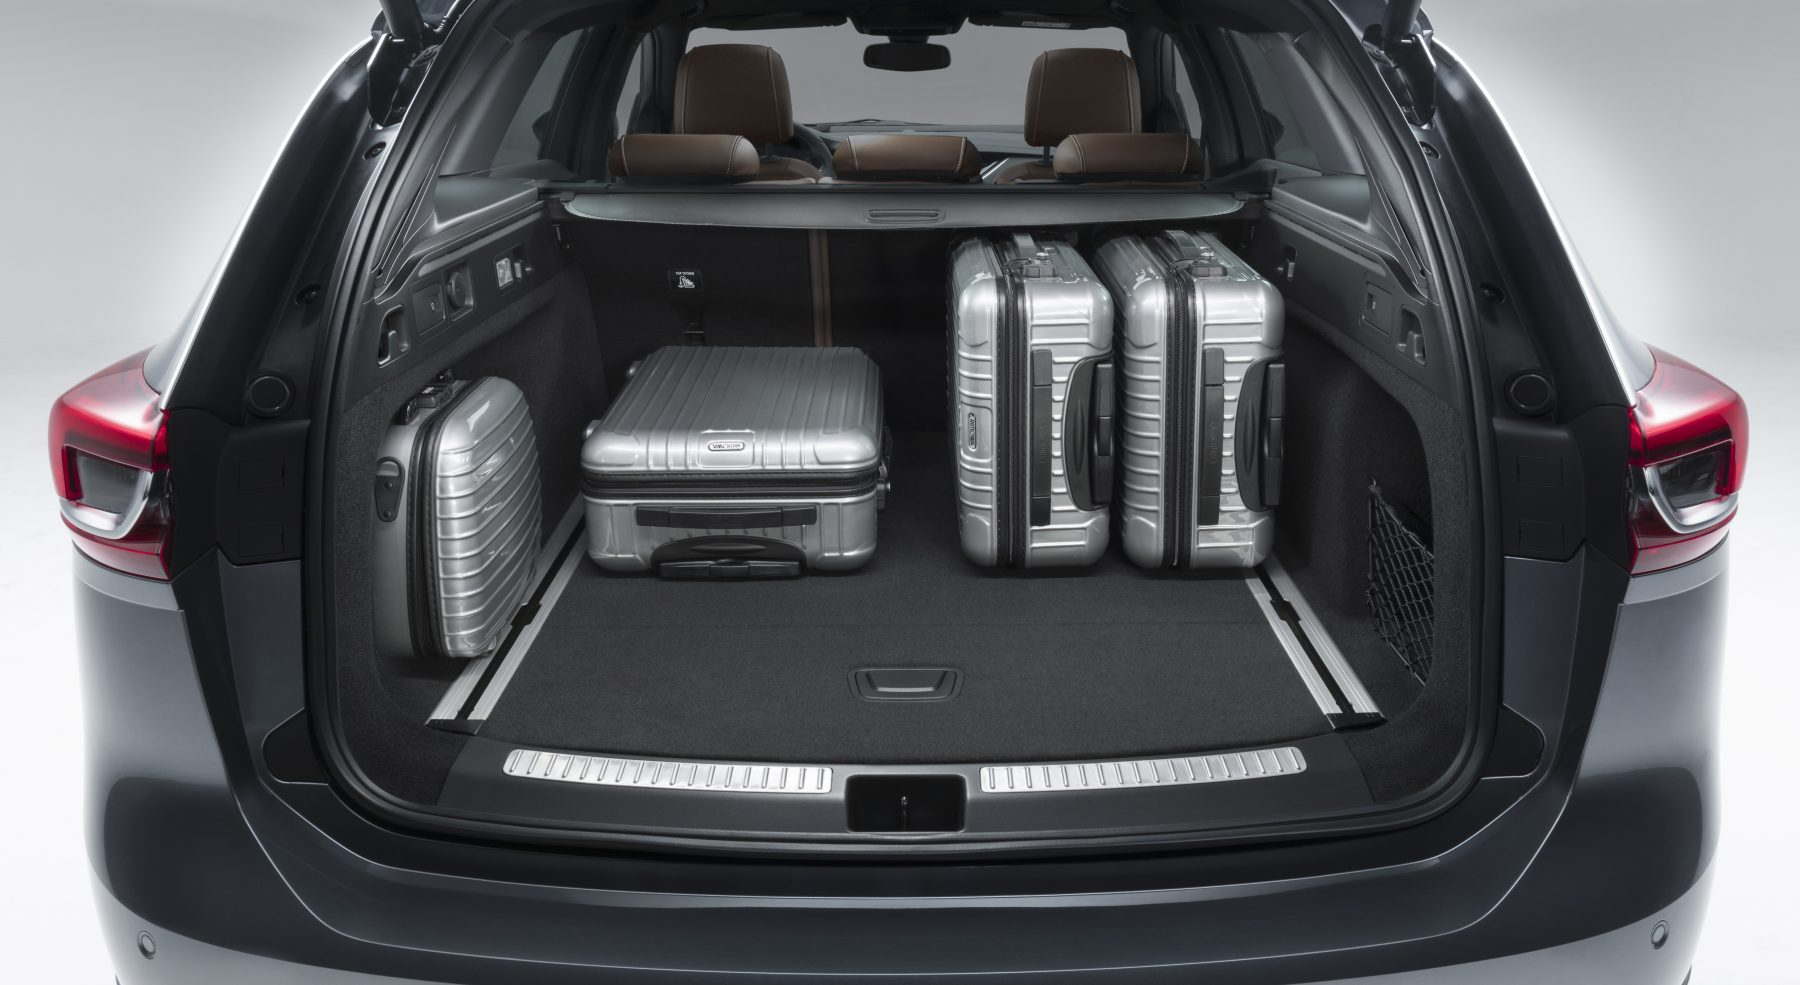 Estate cars are able to offer plenty of boot space